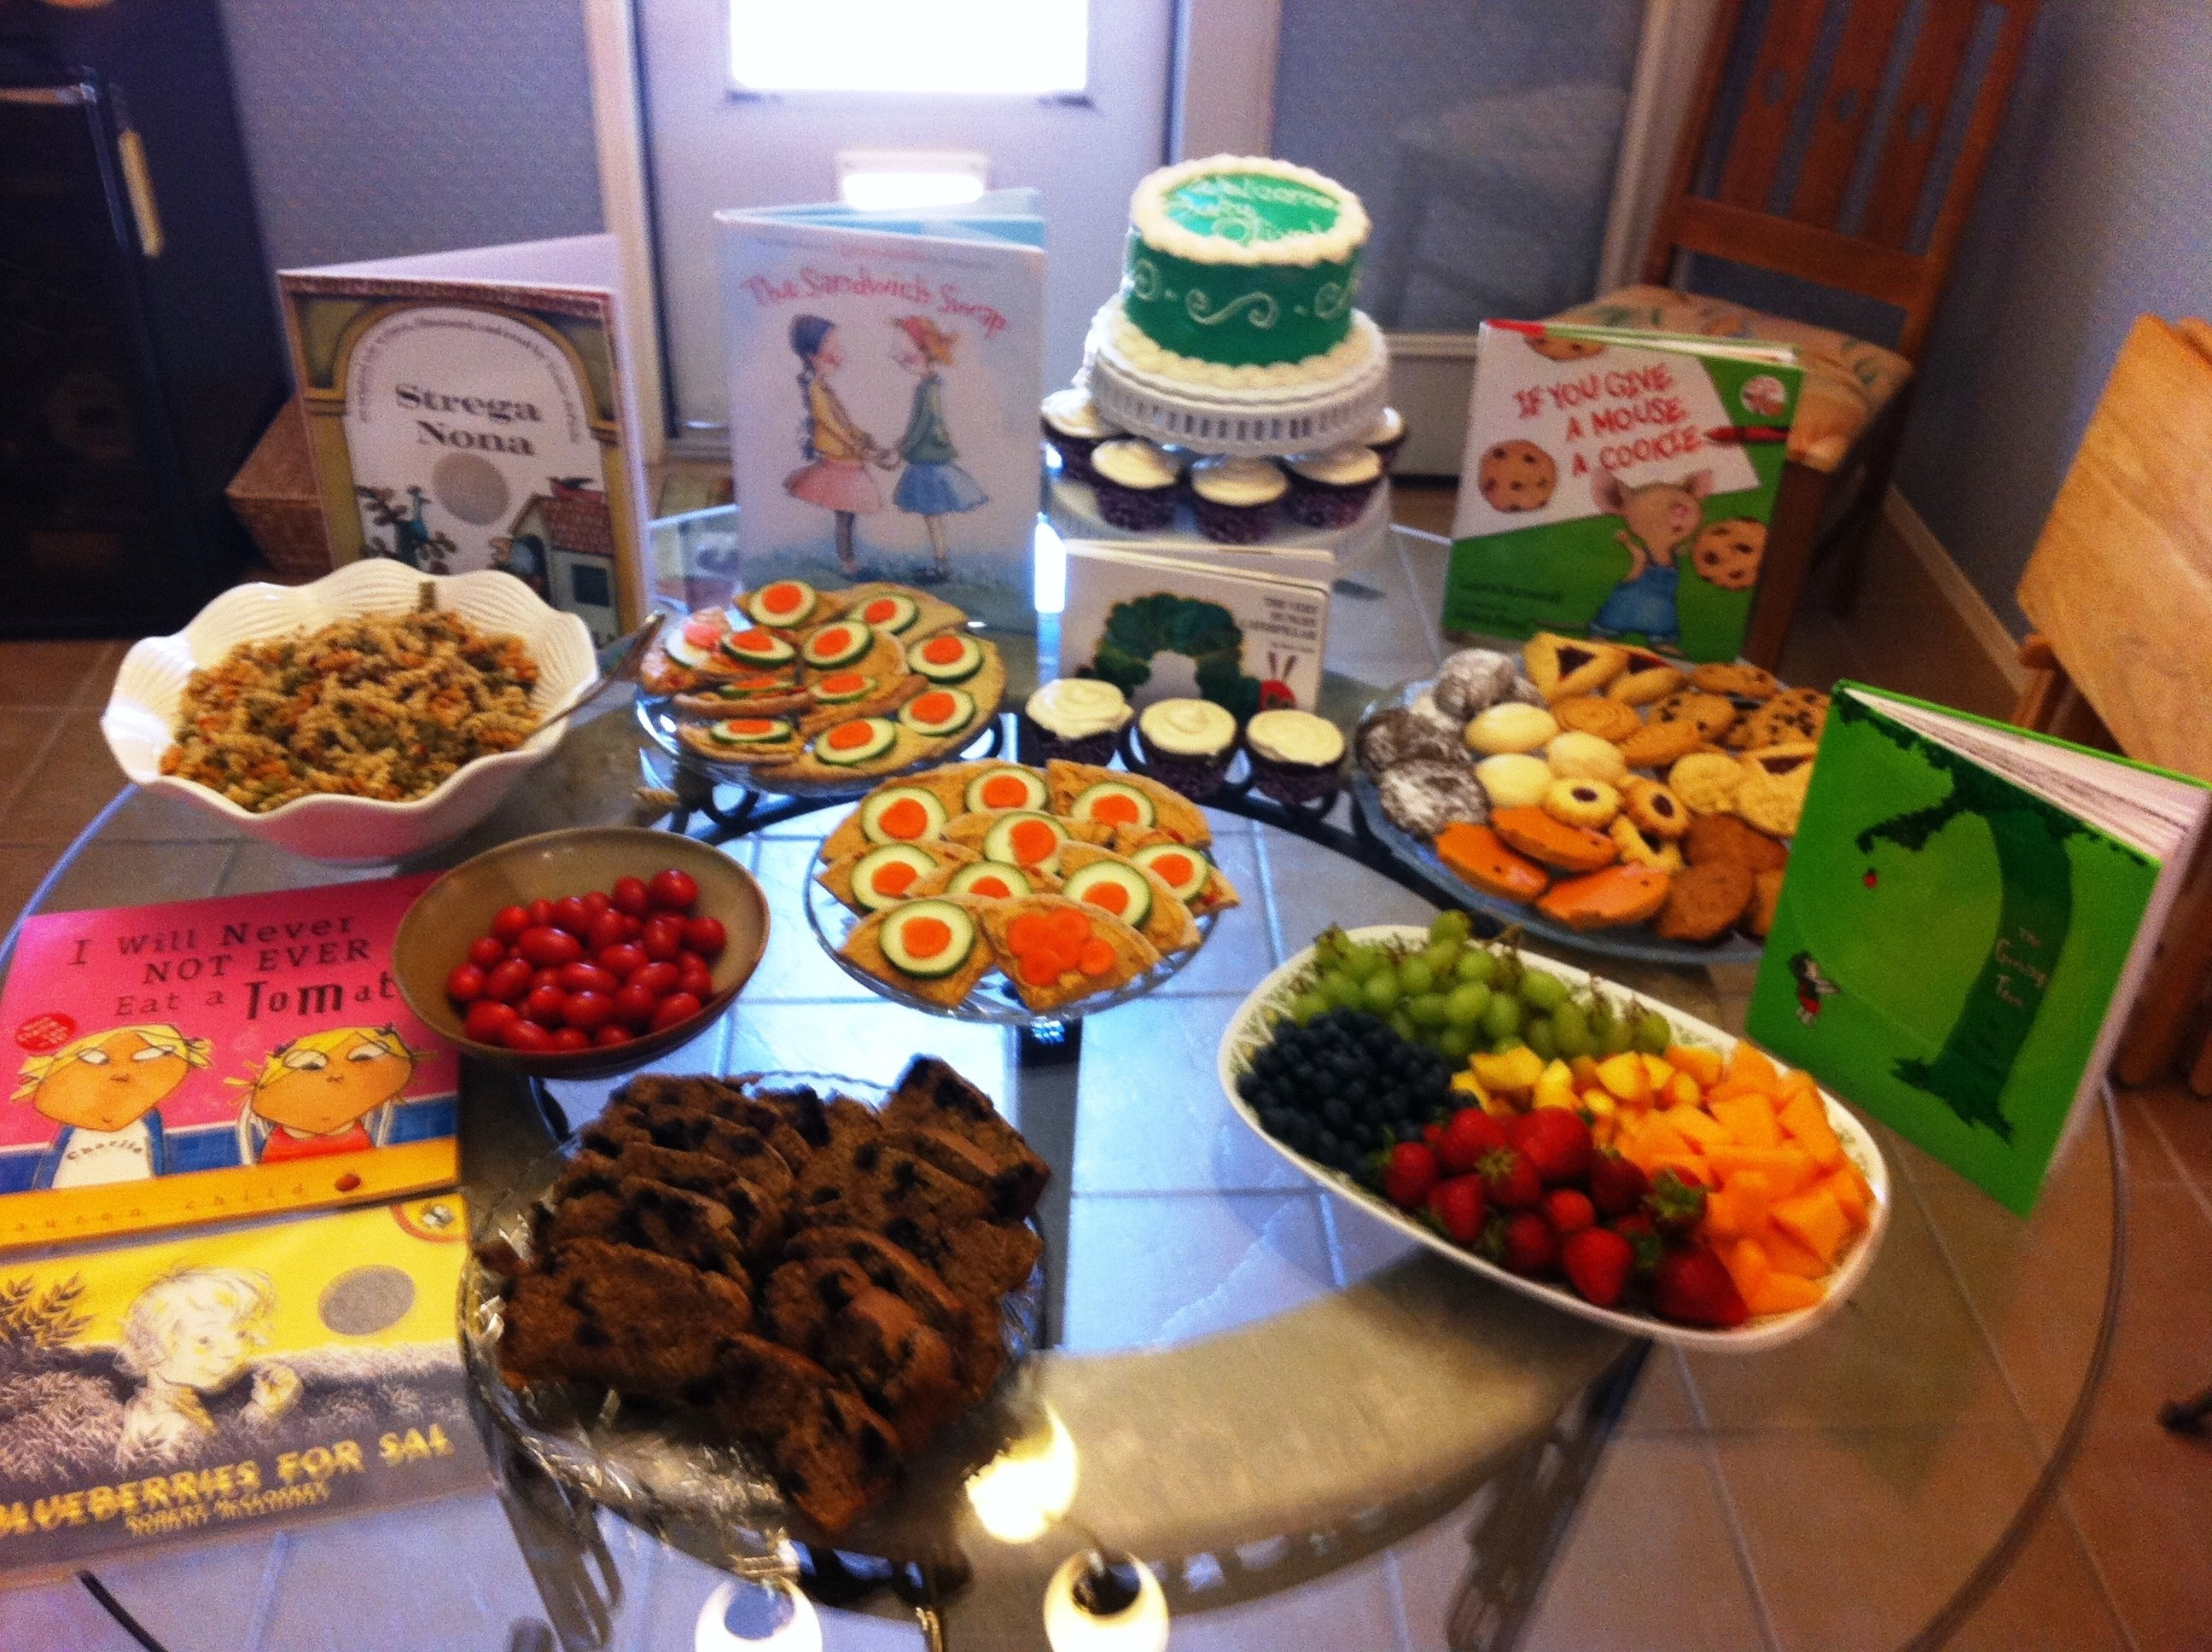 10 Attractive Baby Shower Food Ideas For A Boy cool baby shower finger food ideas budget and baby shower ideas kits 12 2020